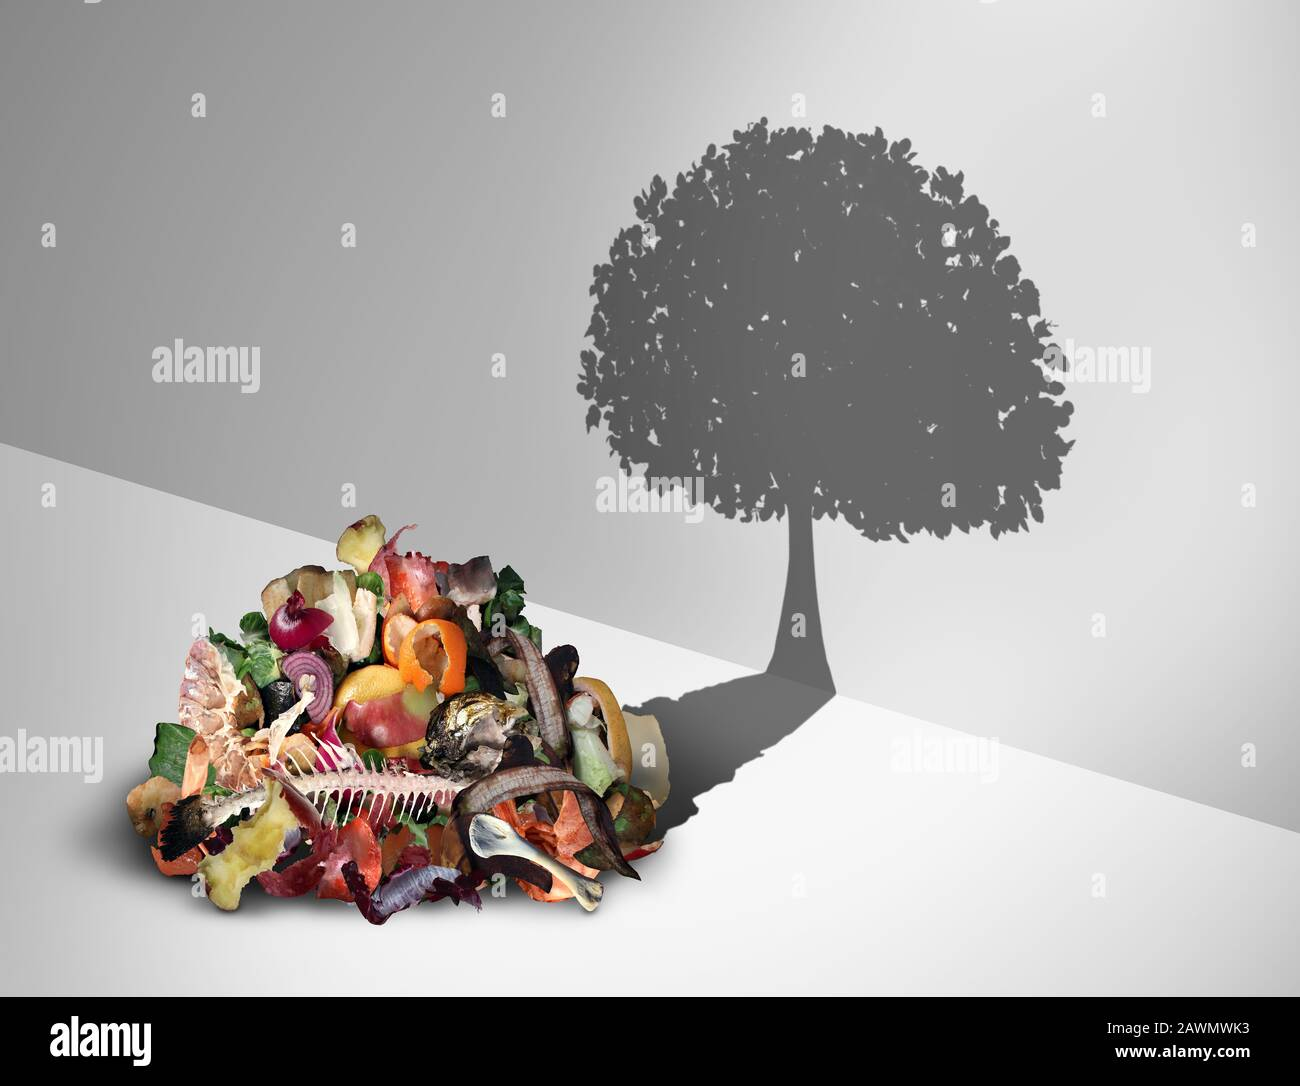 Compost Recycling And And Composted Soil Cycle As A Composting Pile Of Rotting Kitchen Scraps With Fruits And Vegetable Garbage Waste Stock Photo Alamy